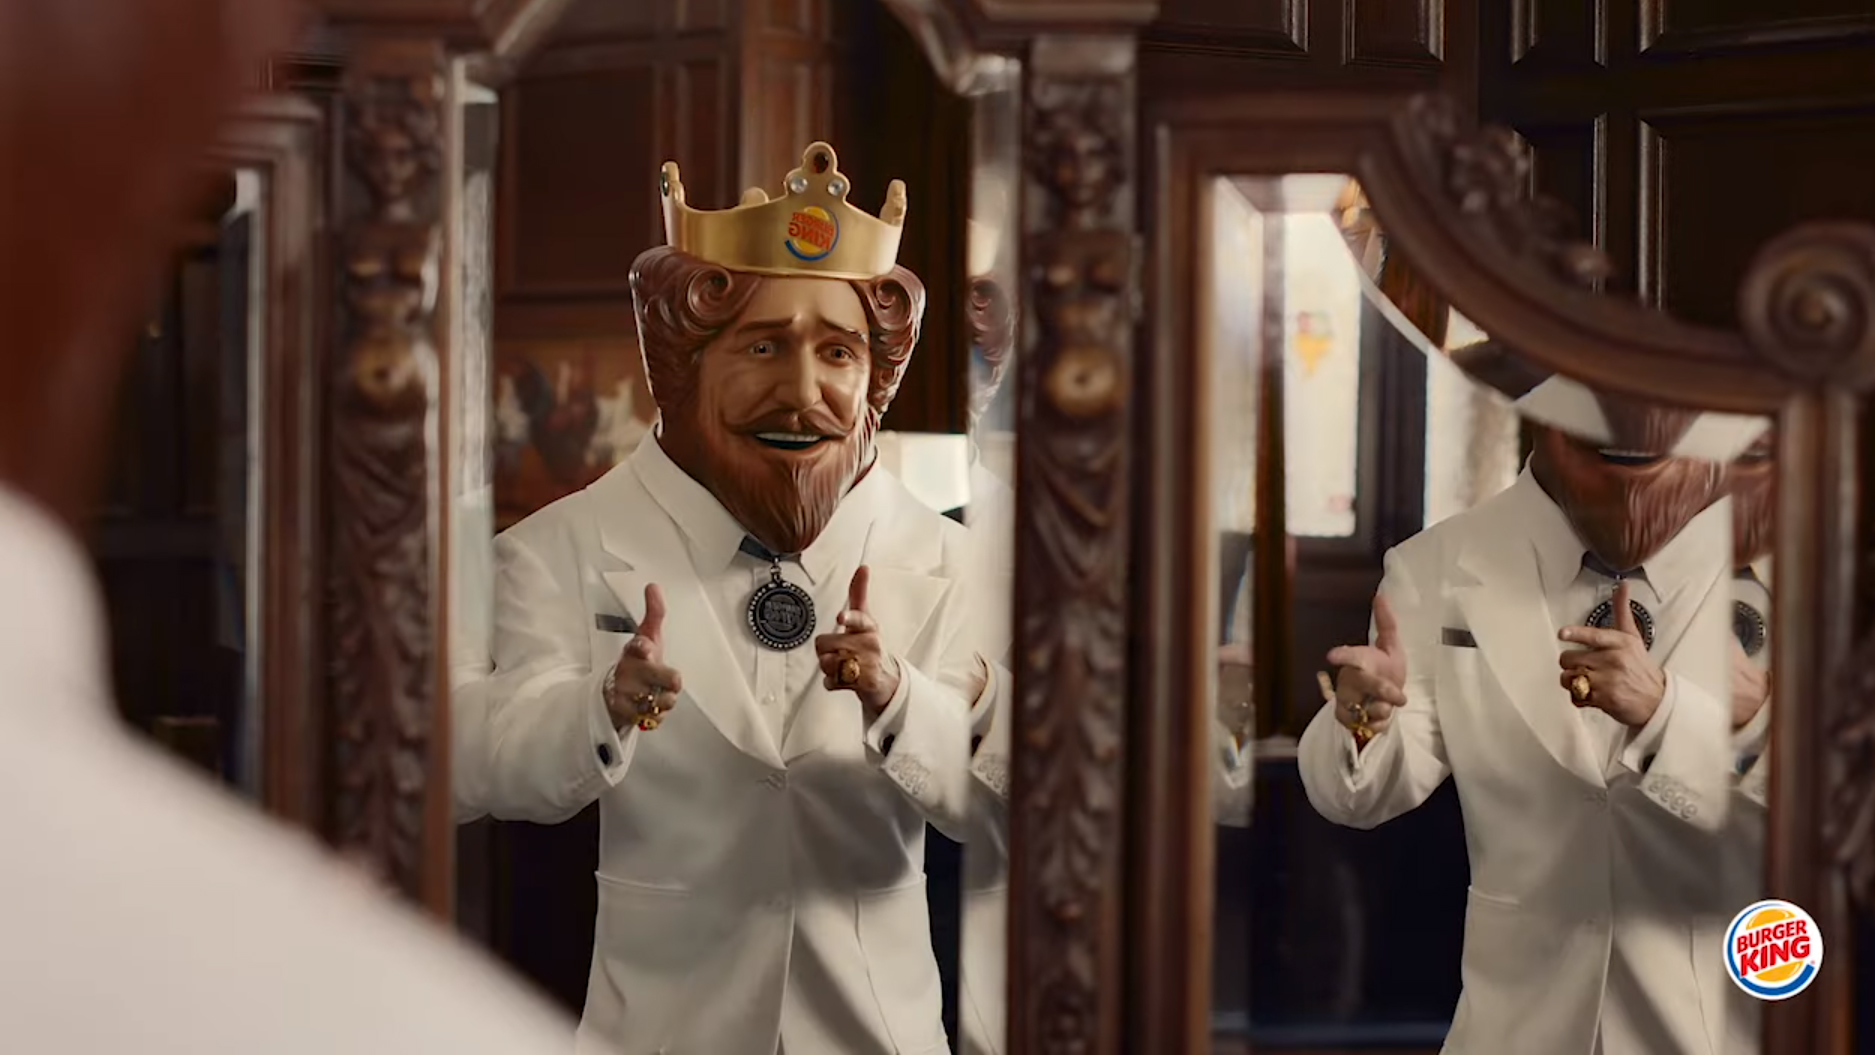 Burger King trolling KFC, Colonel Sanders in ad for flame-grilled chicken